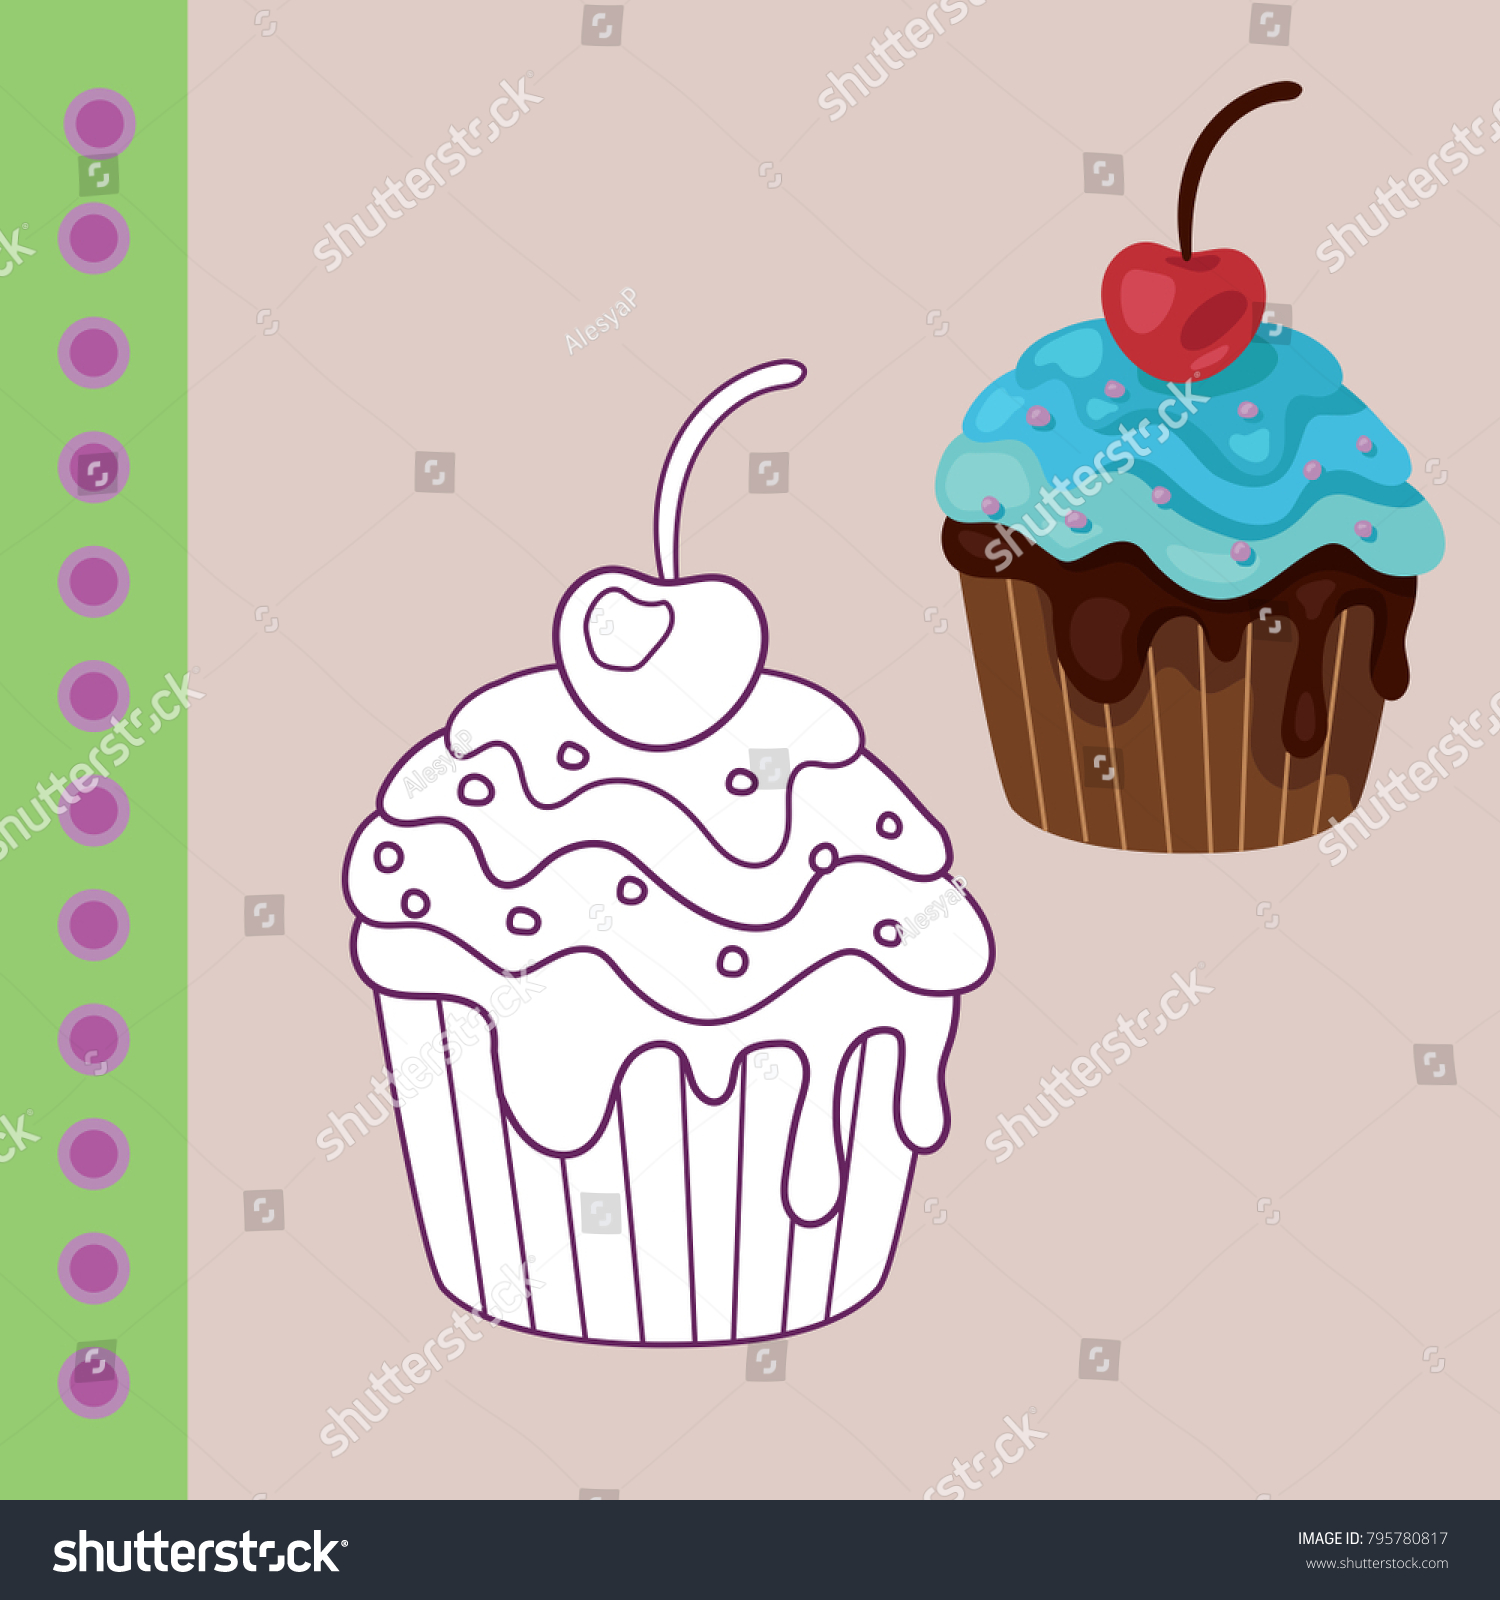 Sweets Coloring Page Children Donat Cake Cupcake Stock Vector ...